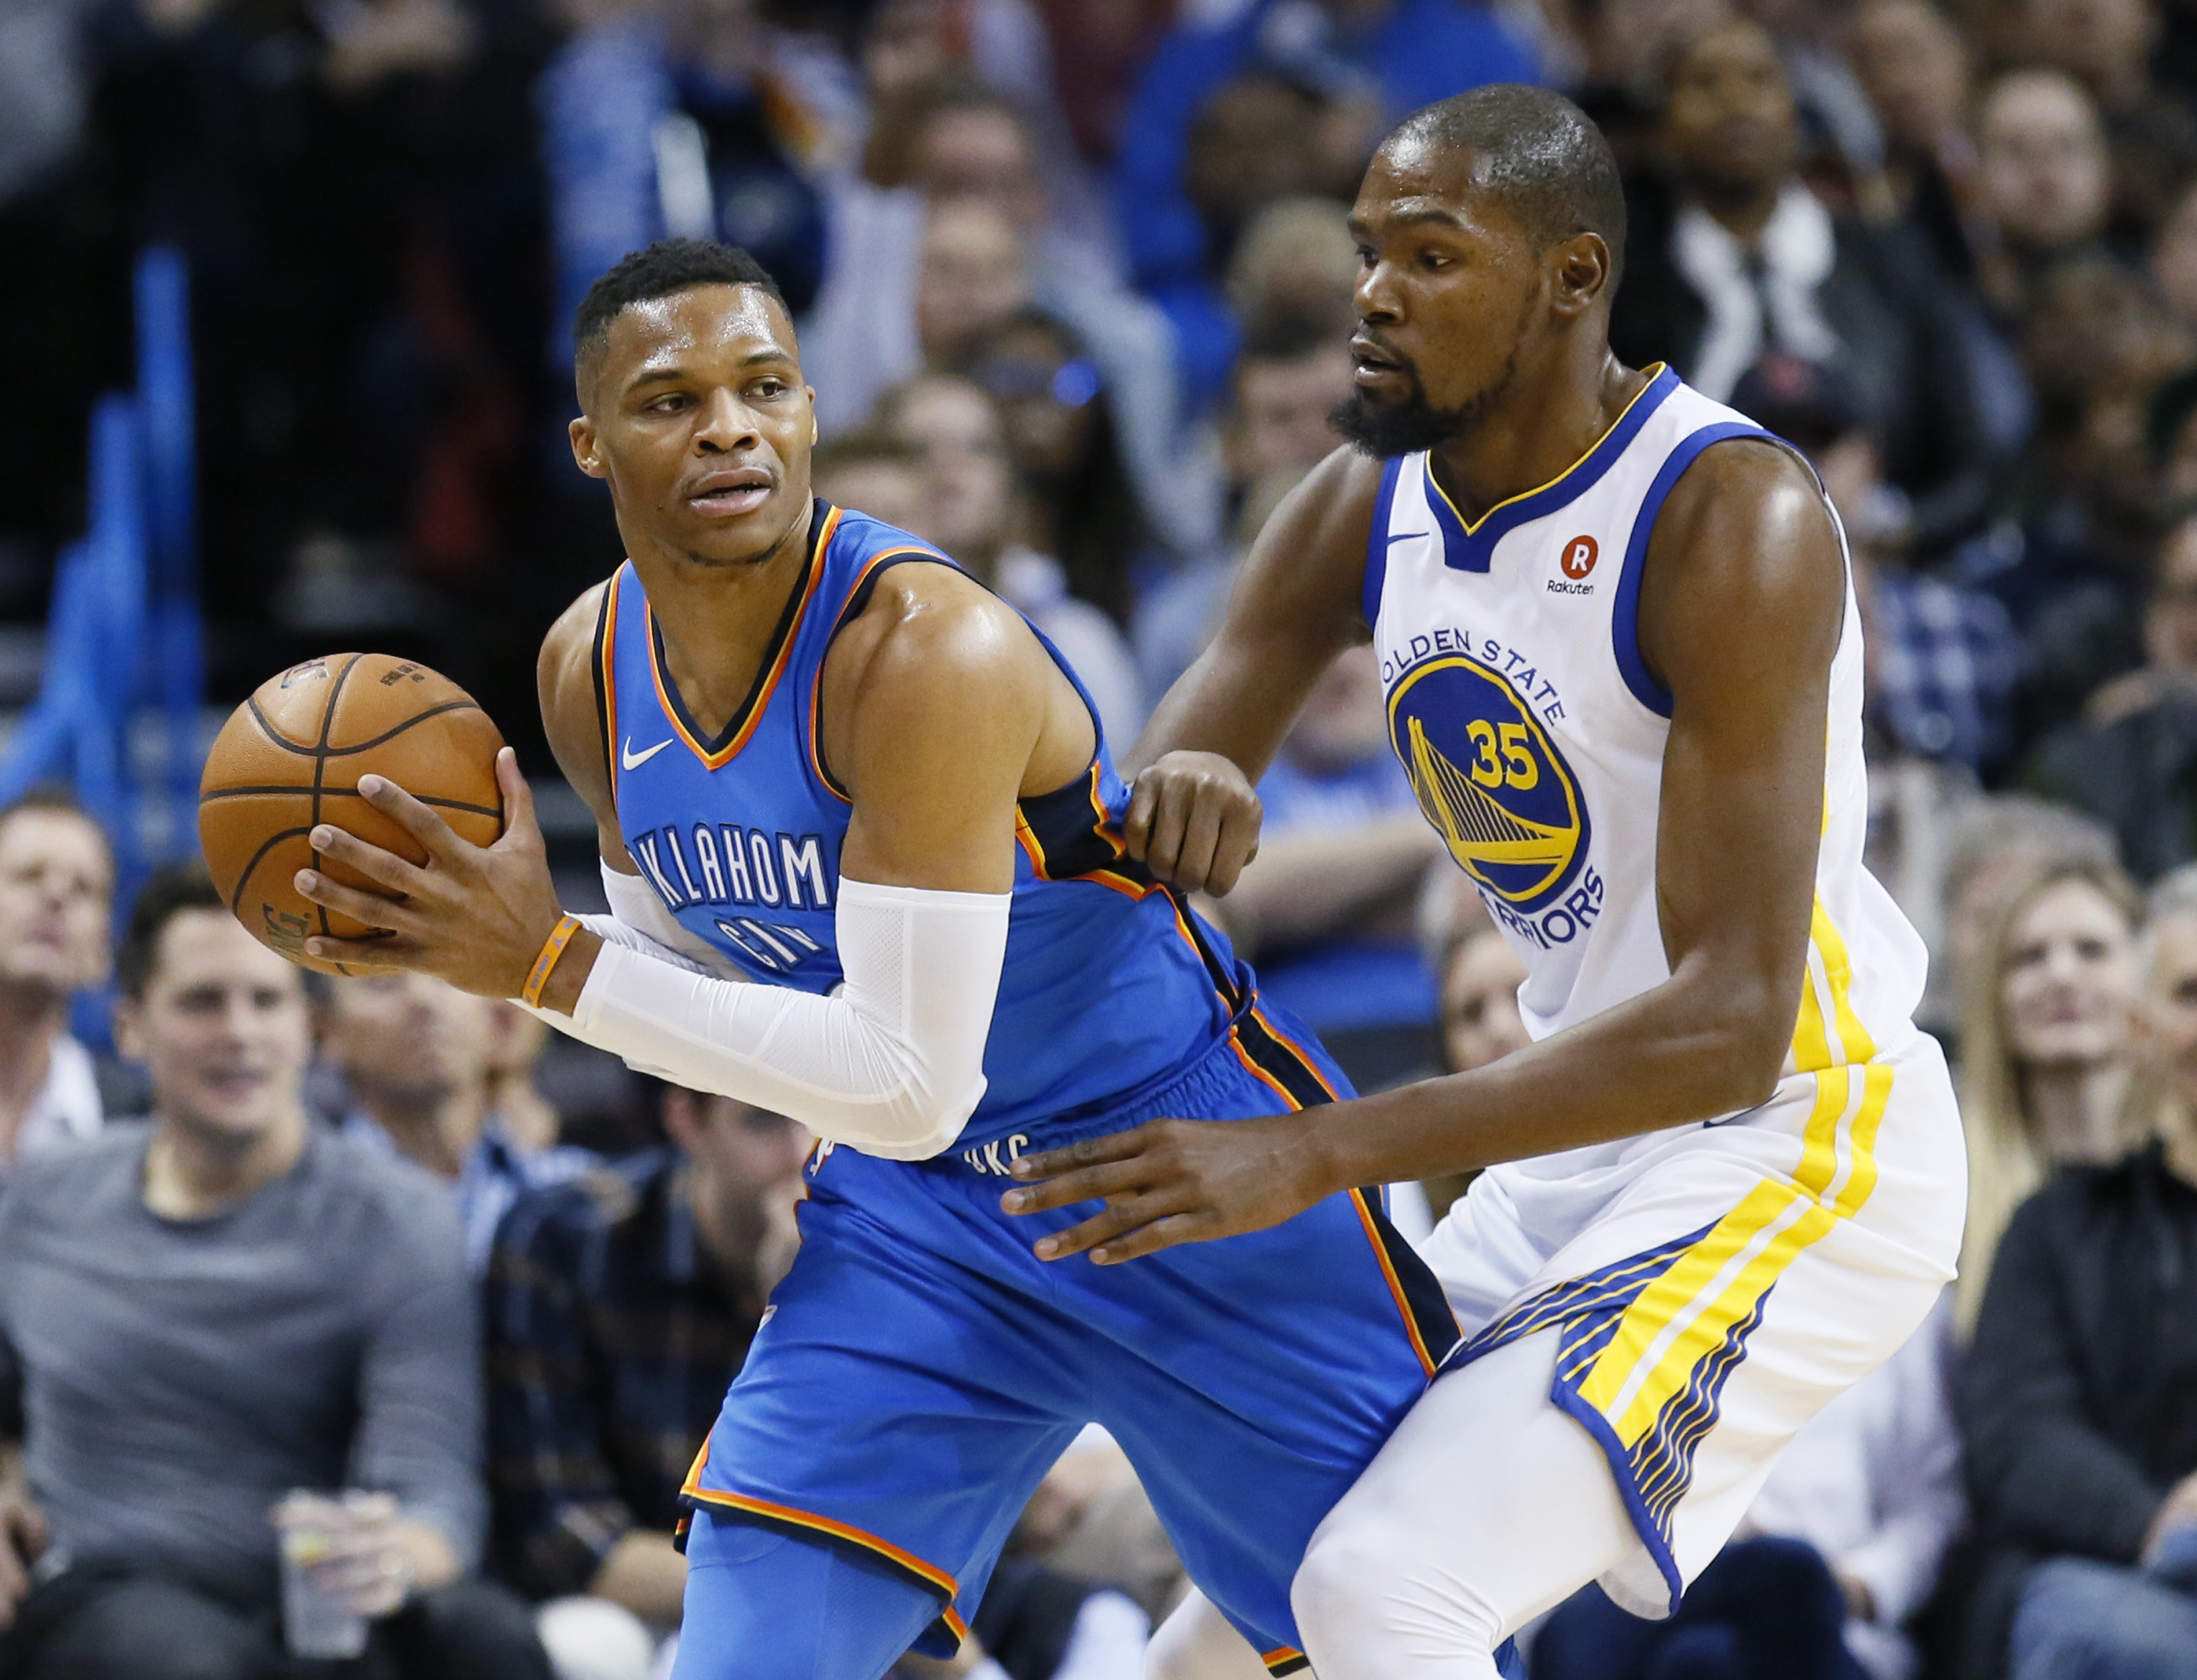 Russell Westbrook on building momentum after win over Warriors